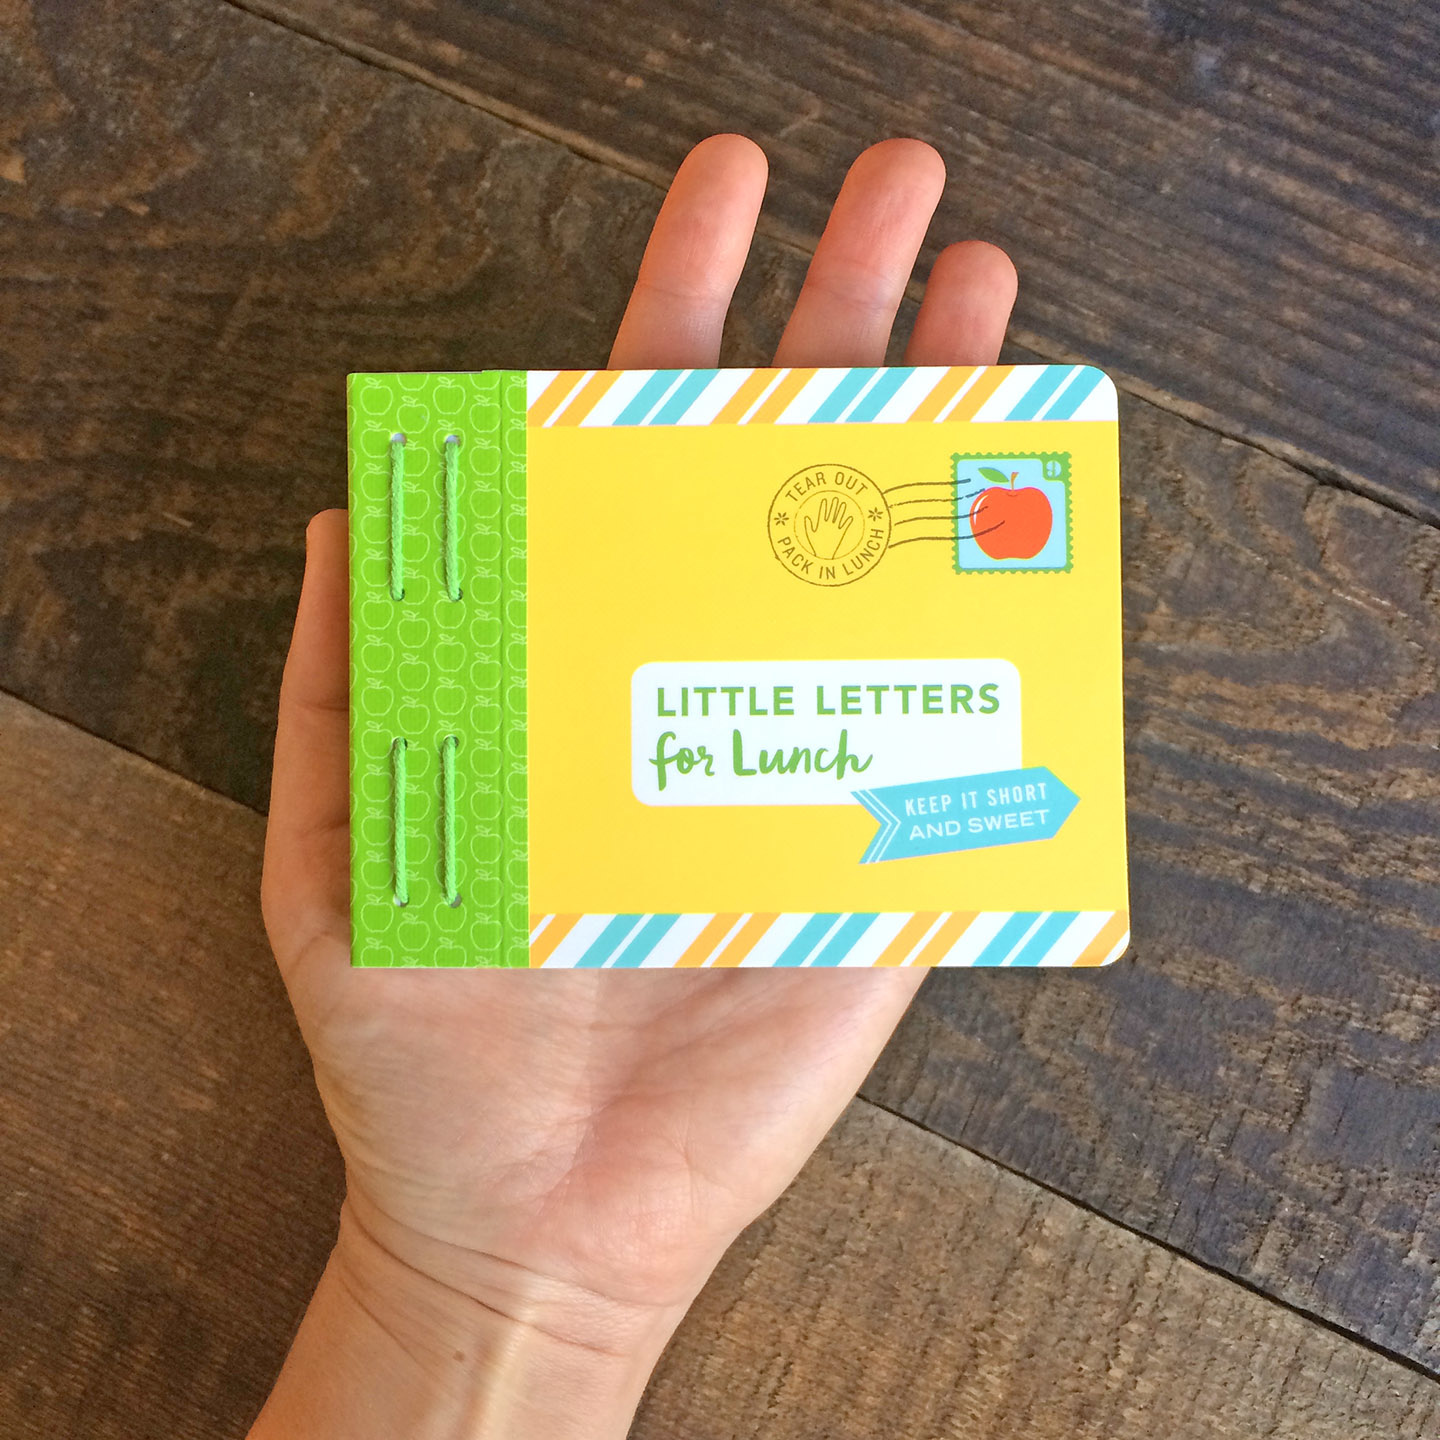 Little Letters for Lunch-2